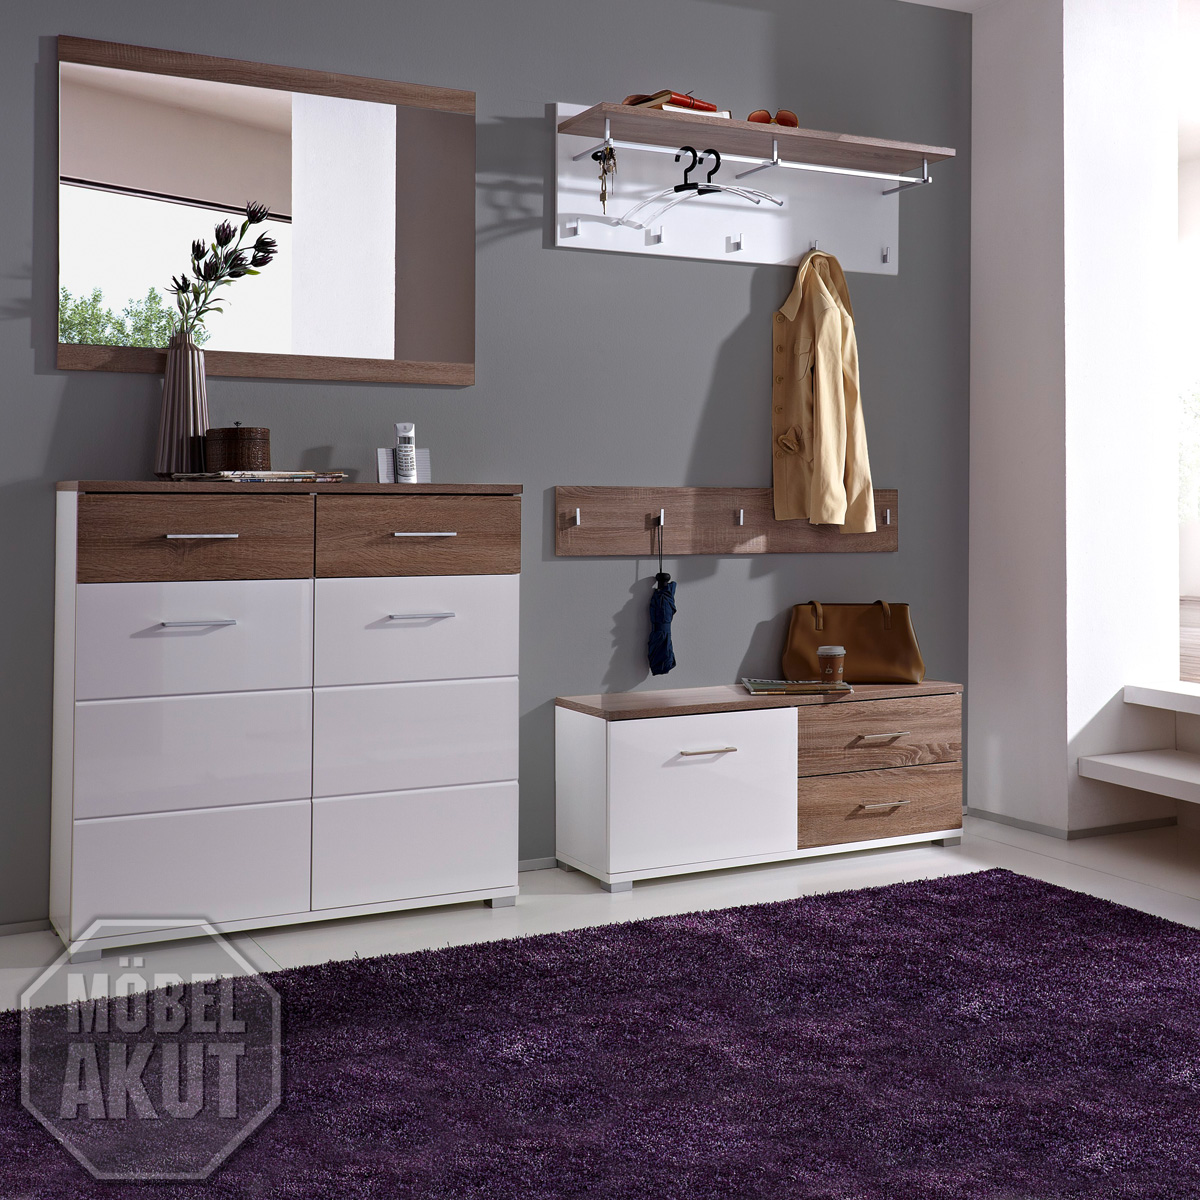 5 tlg garderobenset malo garderobe in wei hochglanz sonoma eiche s gerau. Black Bedroom Furniture Sets. Home Design Ideas